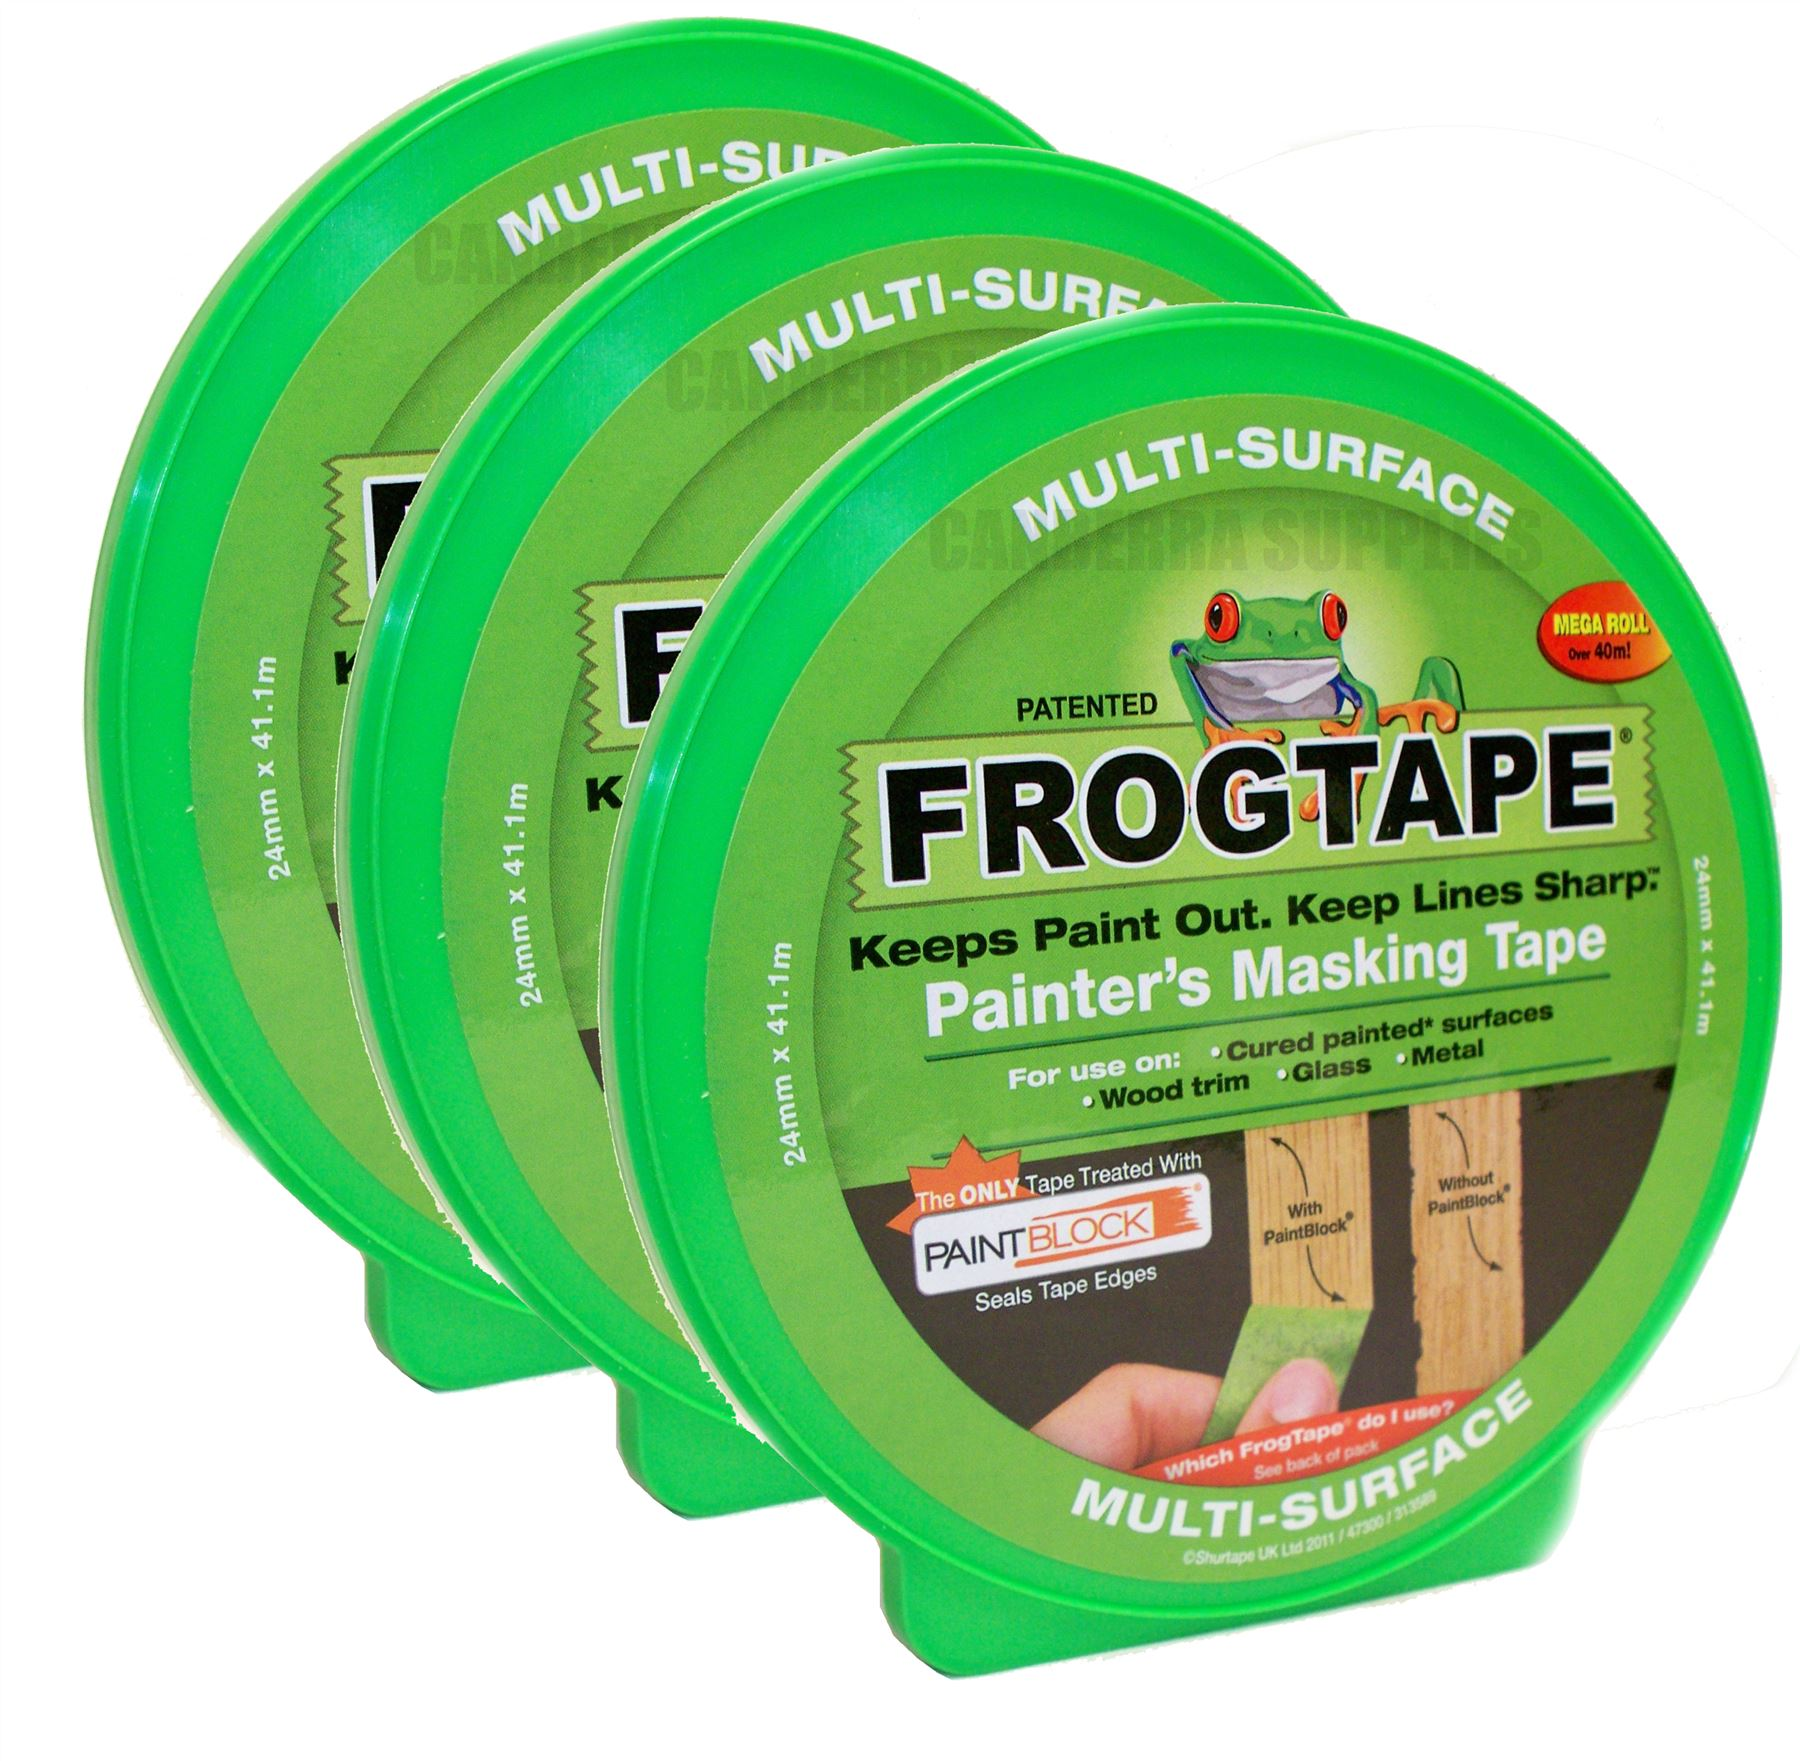 3 x frog tape painters masking tape multi surface - green 24mm x